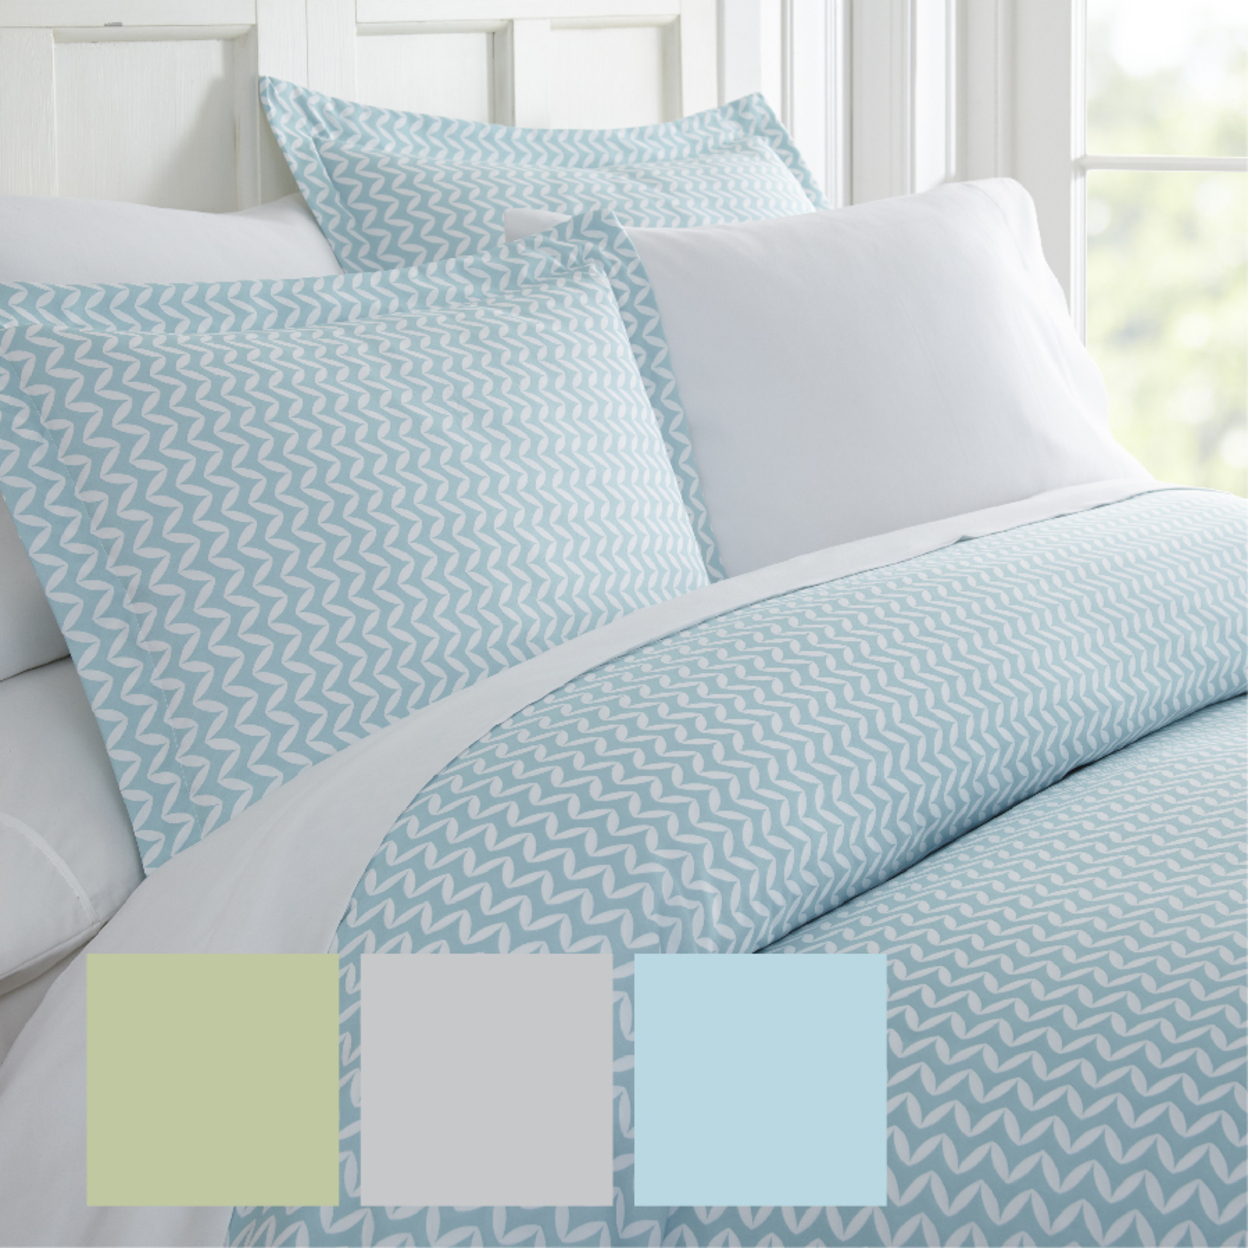 Home Collection? Premium Ultra Soft 3 Piece Puffed Chevron Print Duvet Cover Set - California King/King, Light Gray